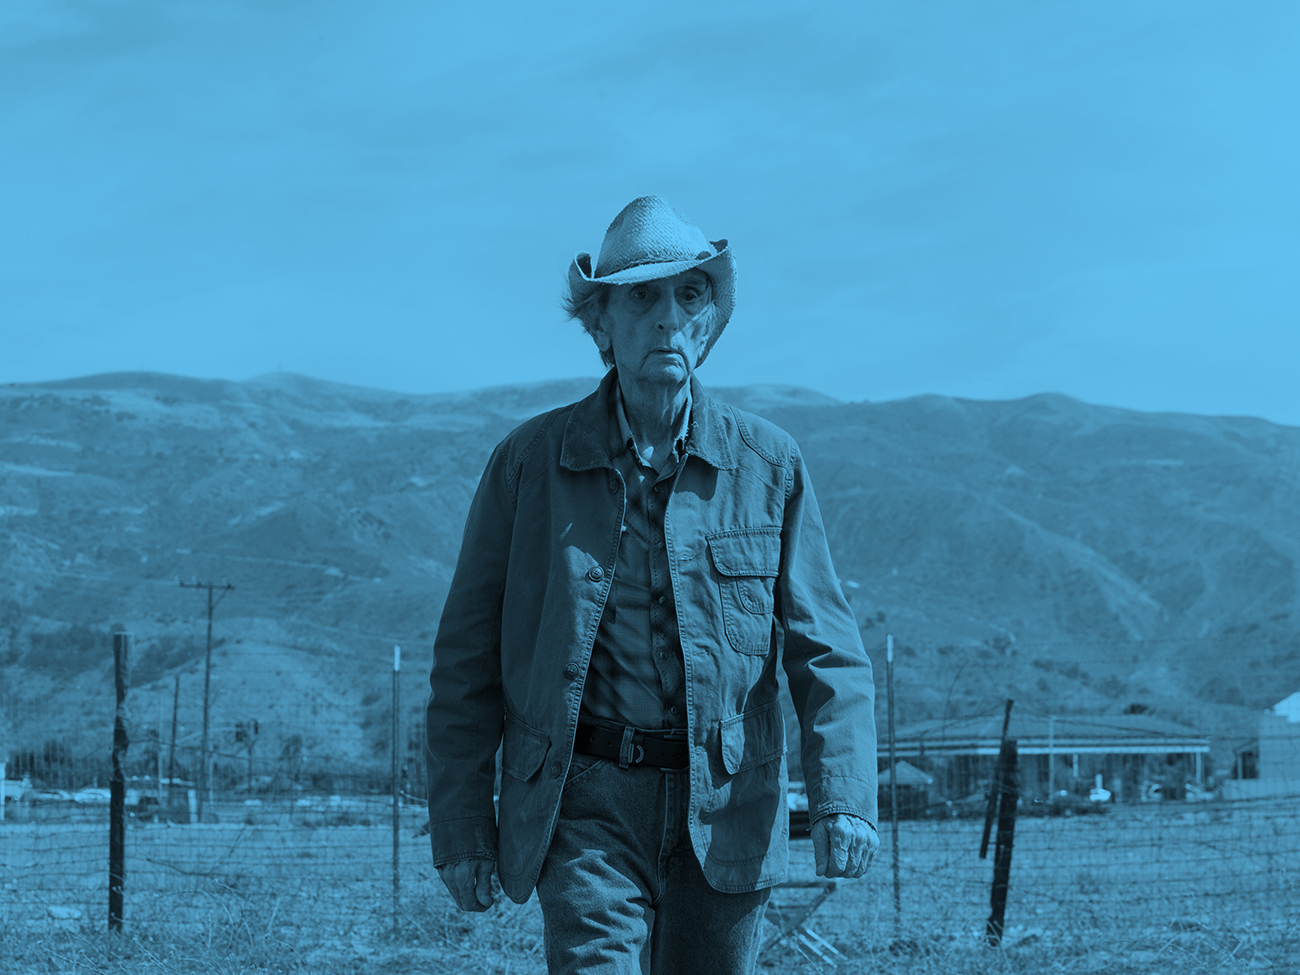 LUCKY © Harry Dean Stanton in LUCKY, a Magnolia Pictures release. Photo courtesy of M4